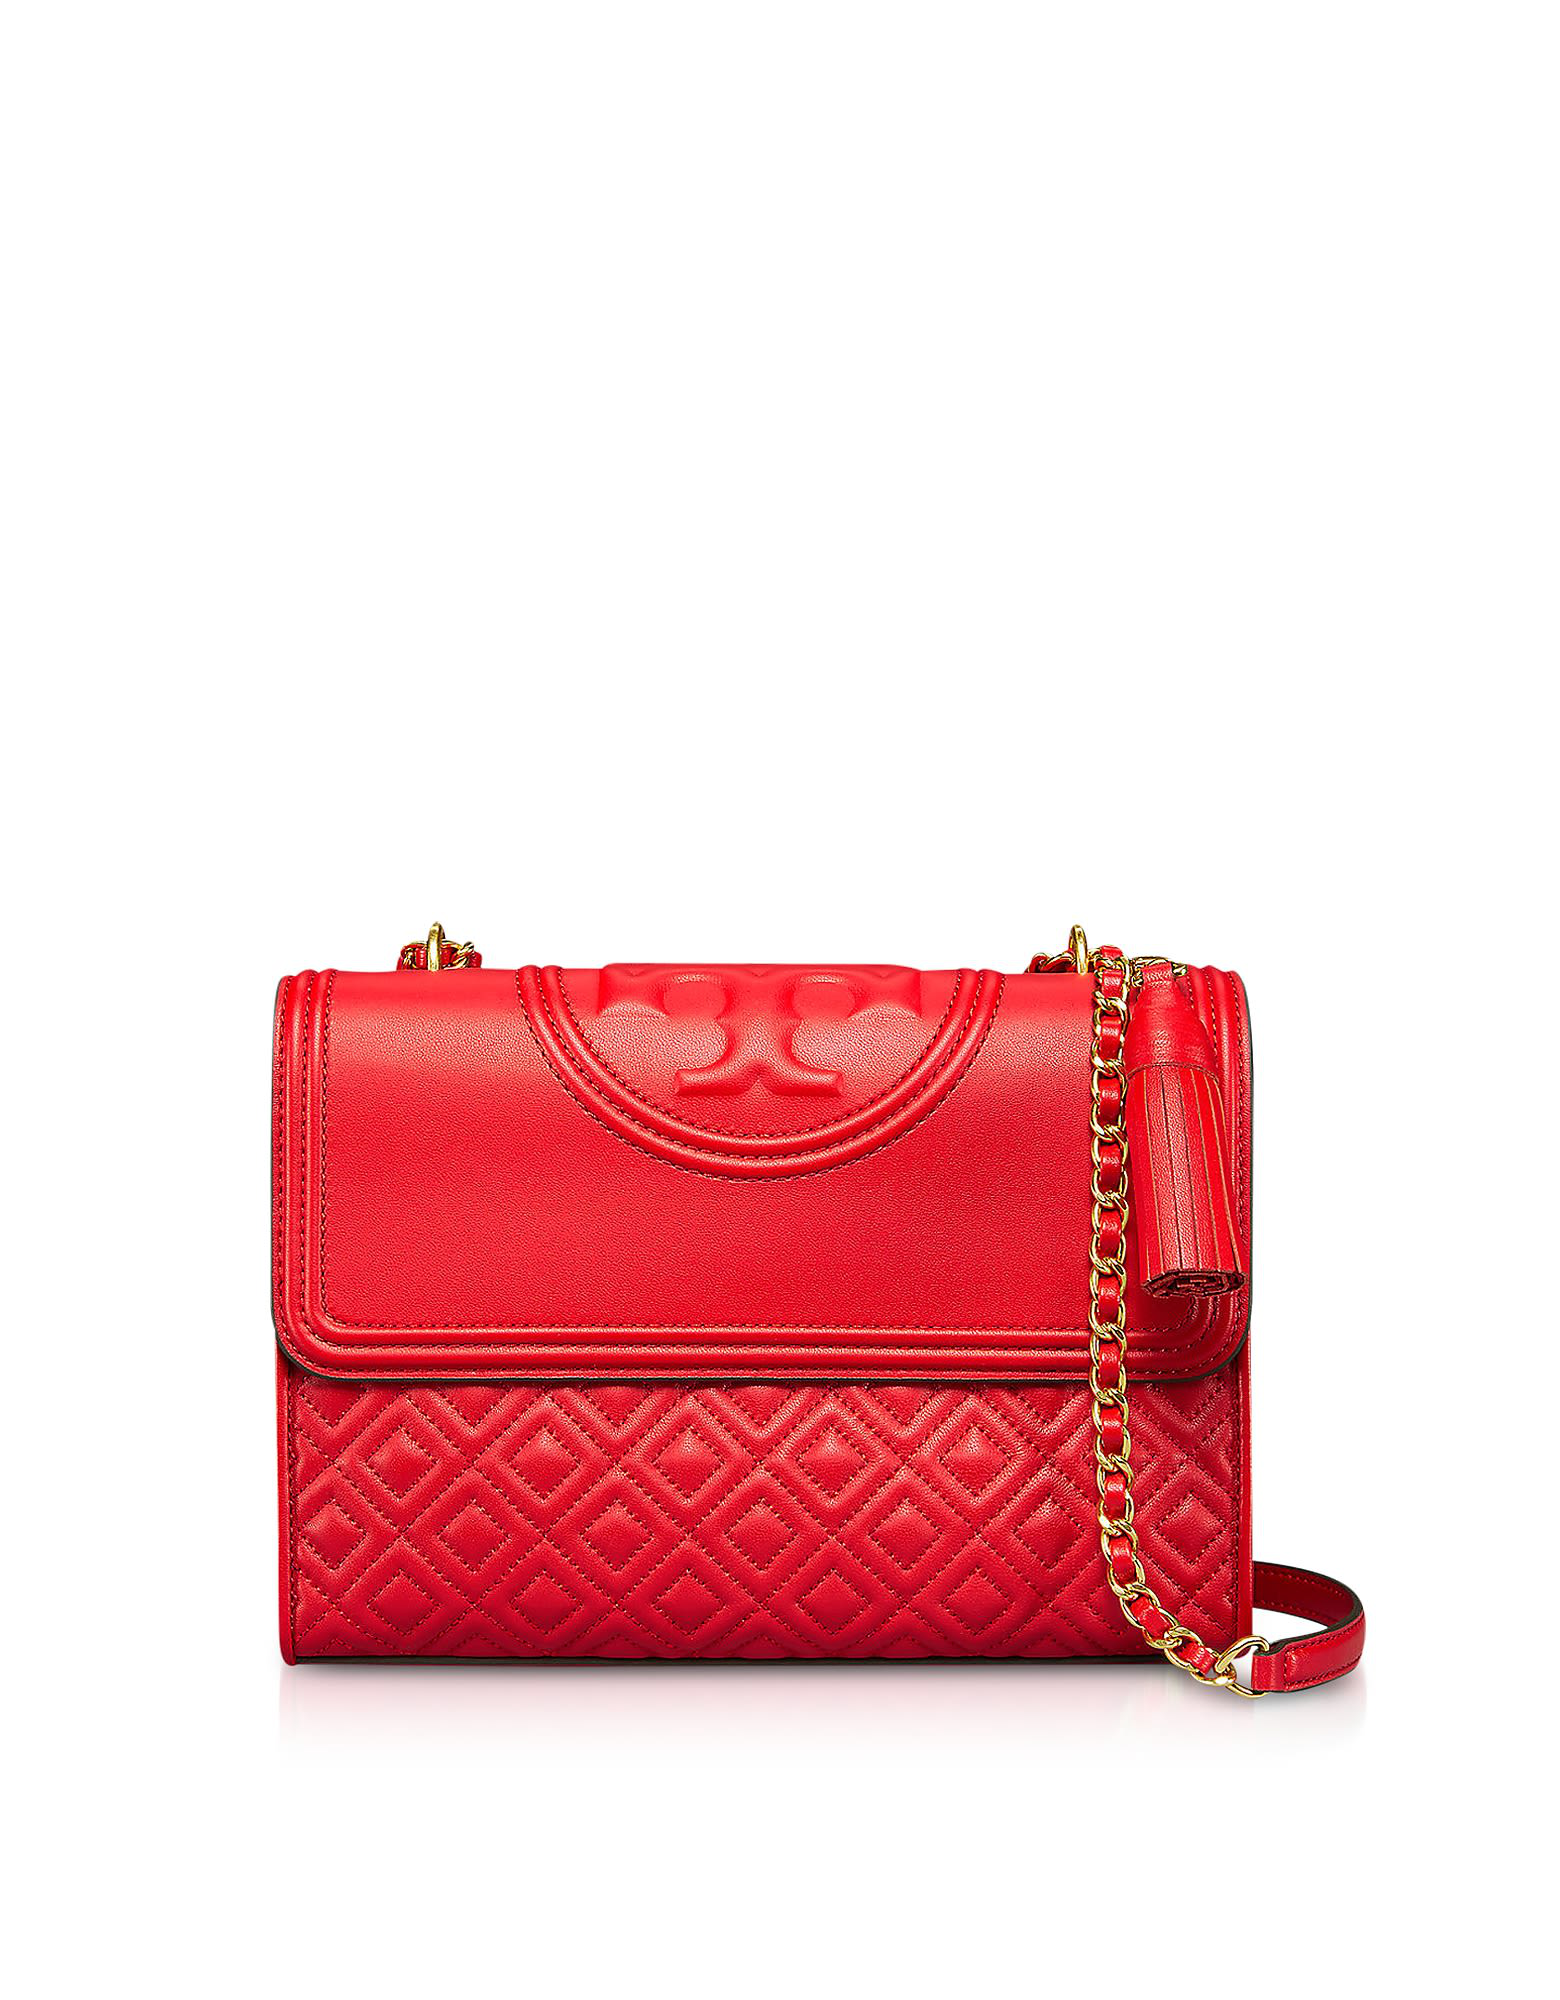 02d14730bda Tory Burch Quilted Leather Fleming Convertible Shoulder Bag In Red ...